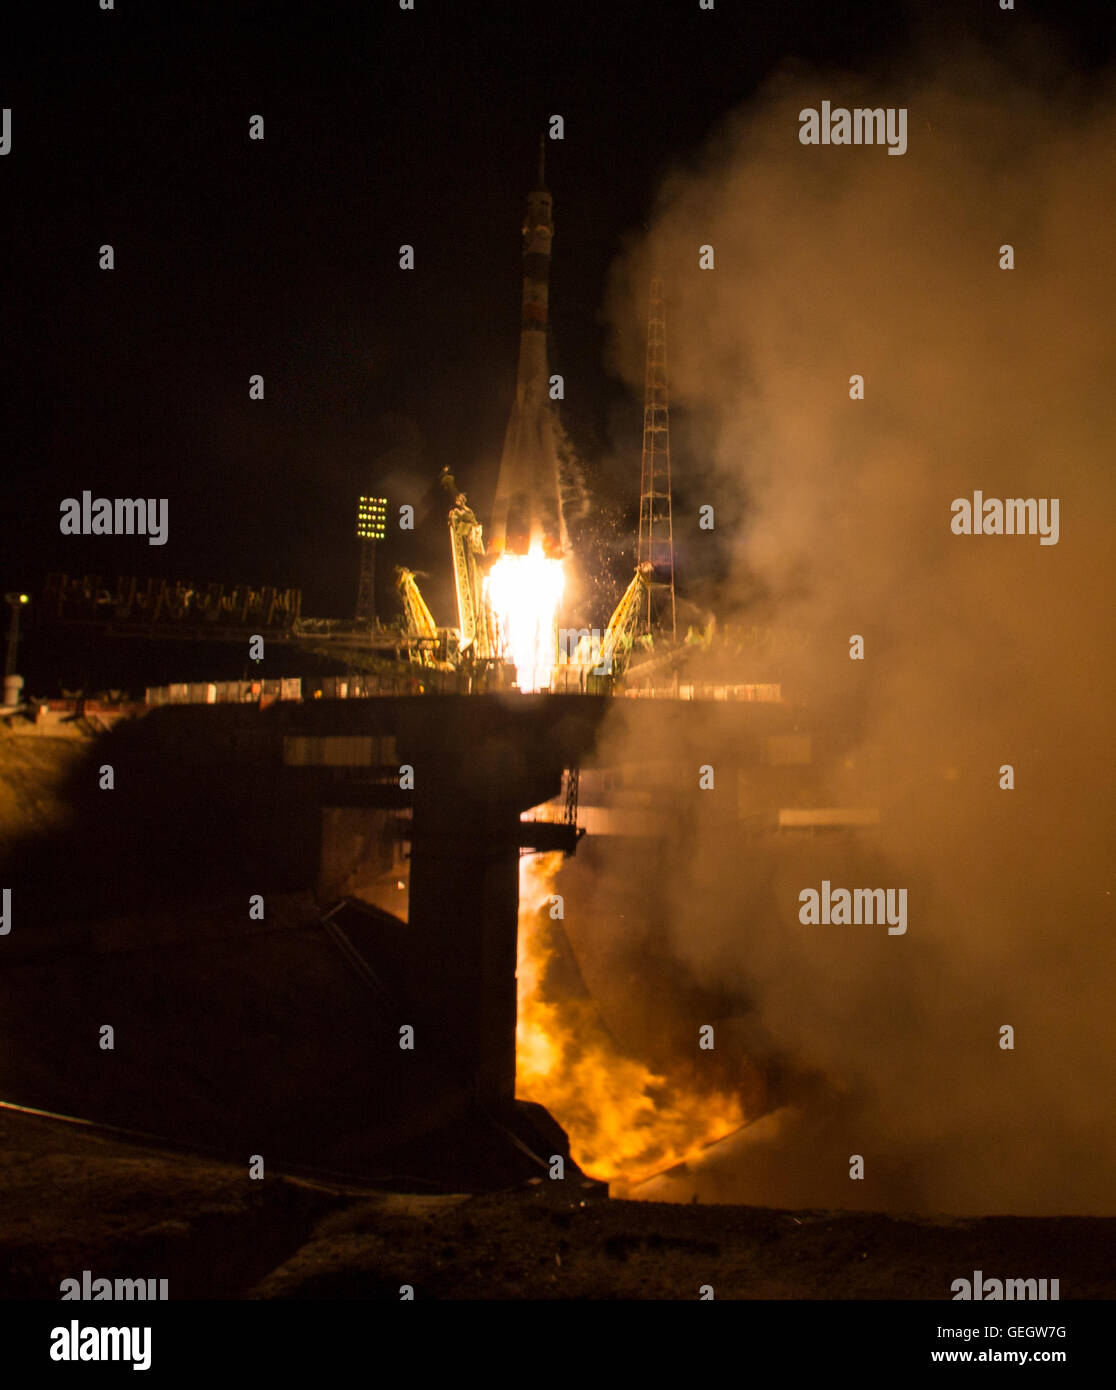 Expedition 47 Launch  03190005 - Stock Image